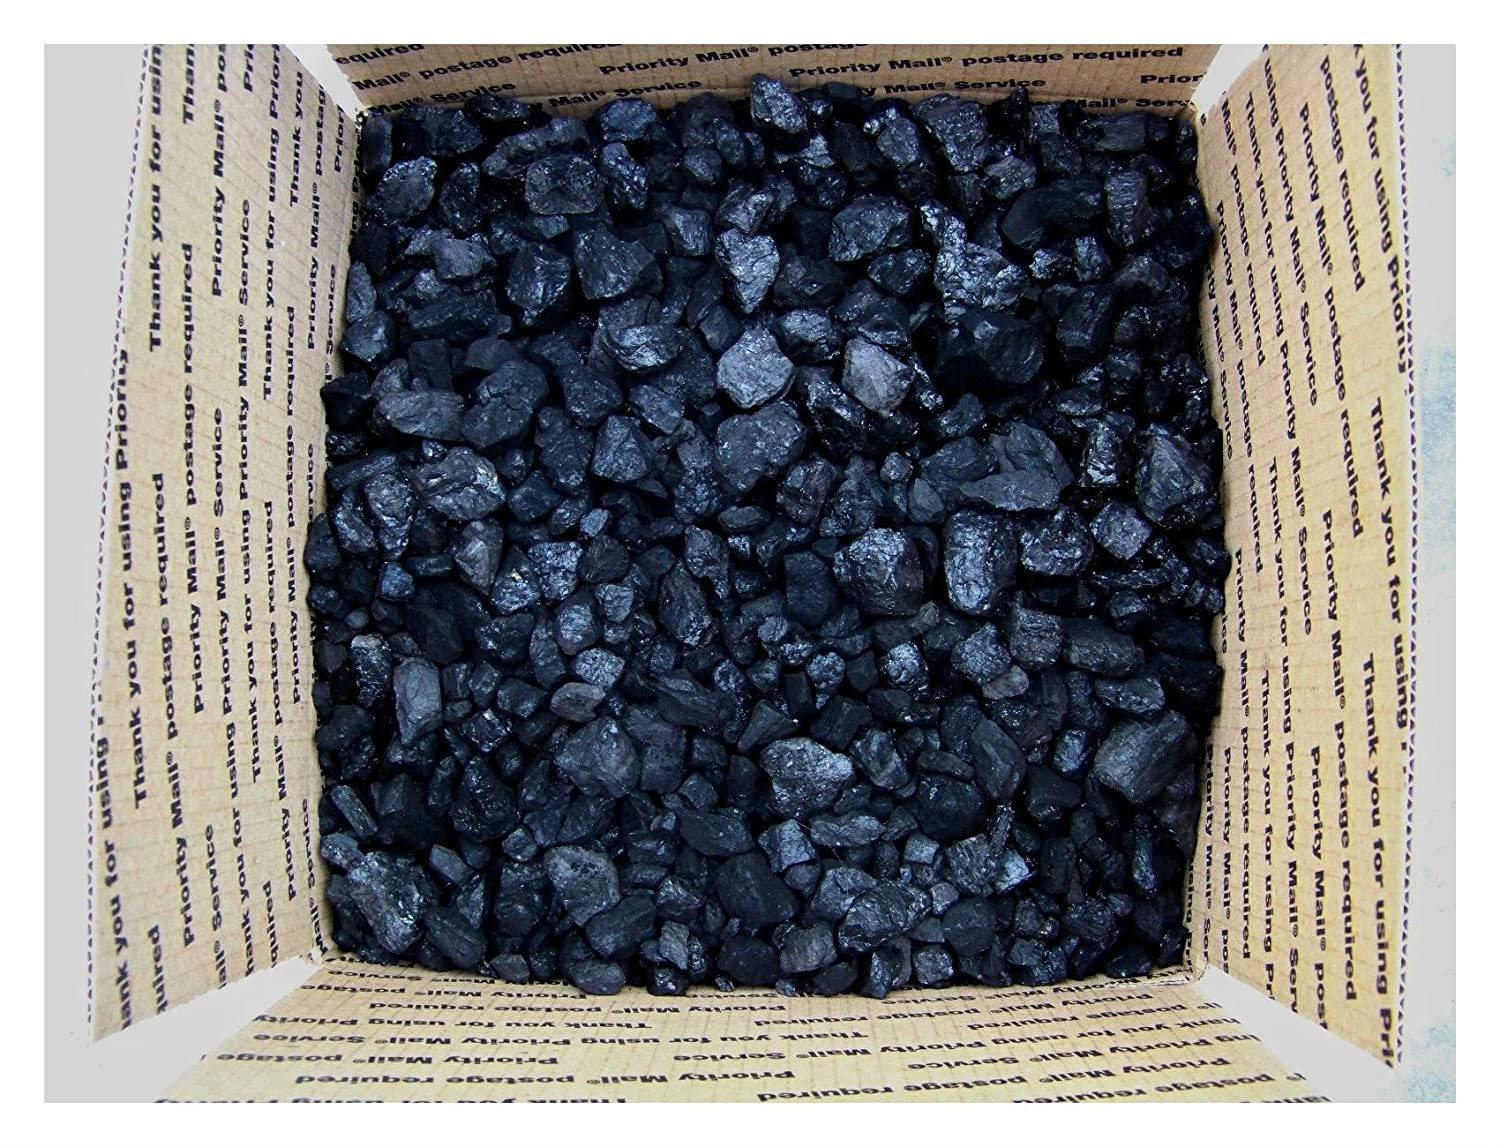 BITUMINOUS BLACKSMITH COAL METALLURGICAL COKING COAL 1/2 CUBIC FT ABOUT 25 LBs. US Seller na